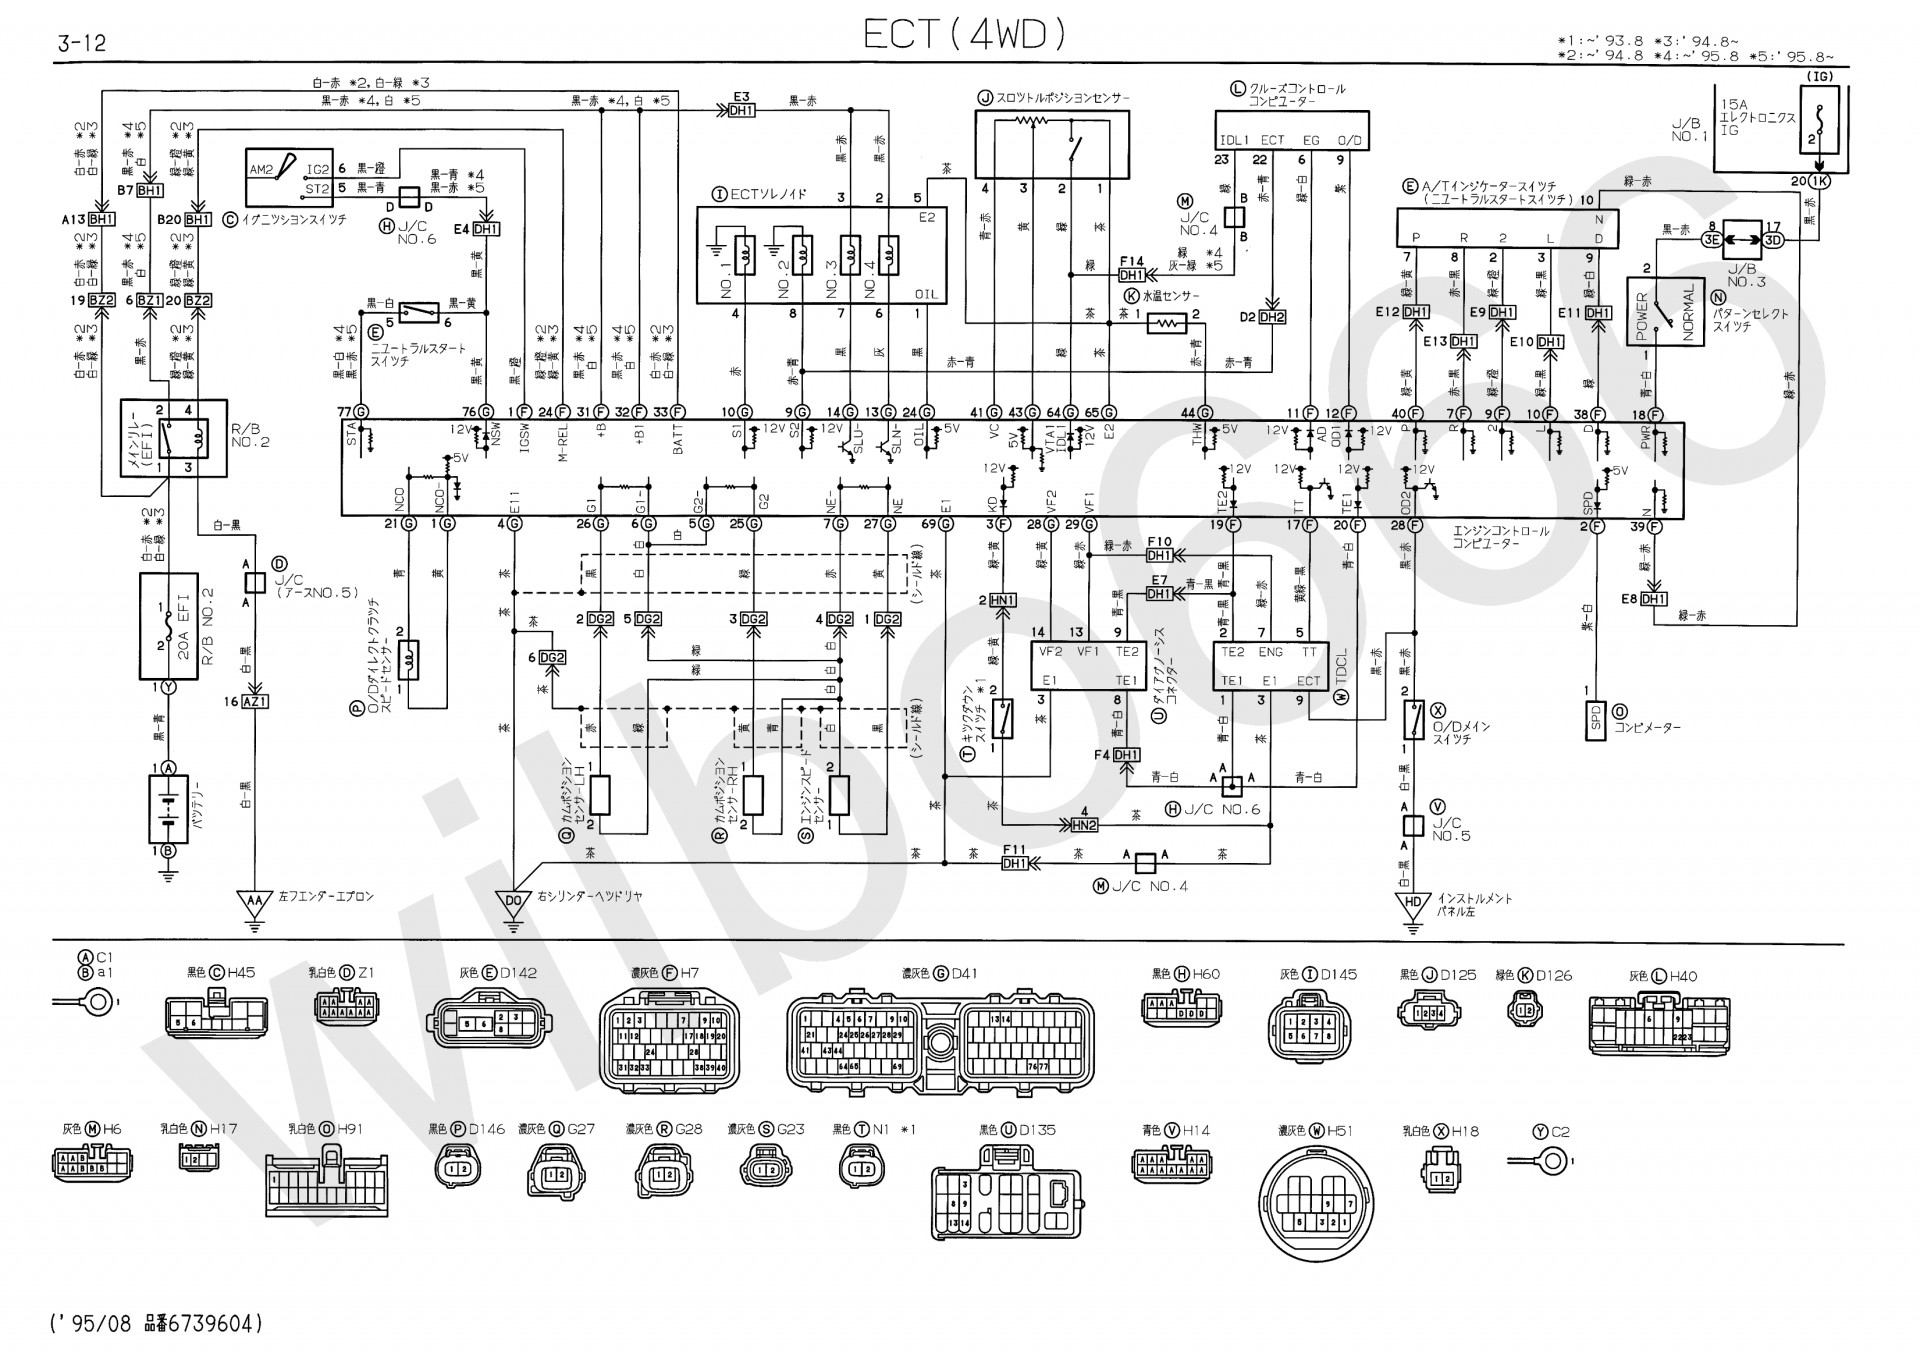 Engineering block diagram business blueprint template for over night engineering block diagram diagram wiring harness repair guides diagrams autozone b16 of engineering block diagram business accmission Gallery